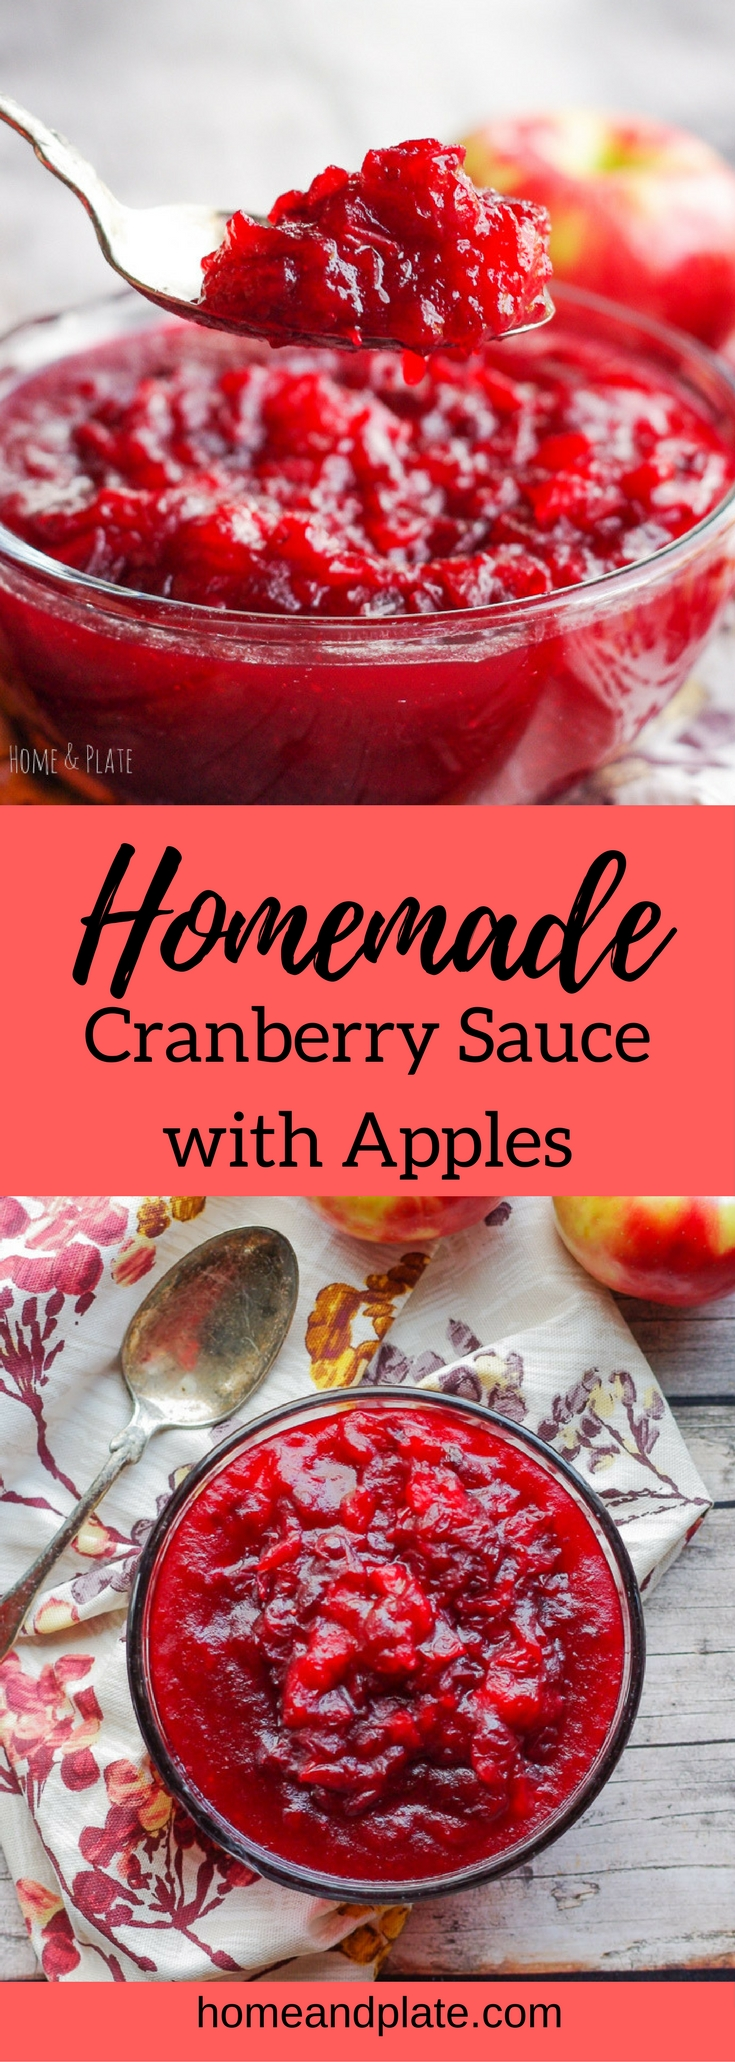 Homemade Cranberry Sauce with Apples | www.homeandplate.com | This homemade cranberry sauce is easy to make and features the tart taste of cranberries mixed with the sweetness of Honeycrisp apples. #thanksgivingrecipe #christmasrecipe #cranberrysauce